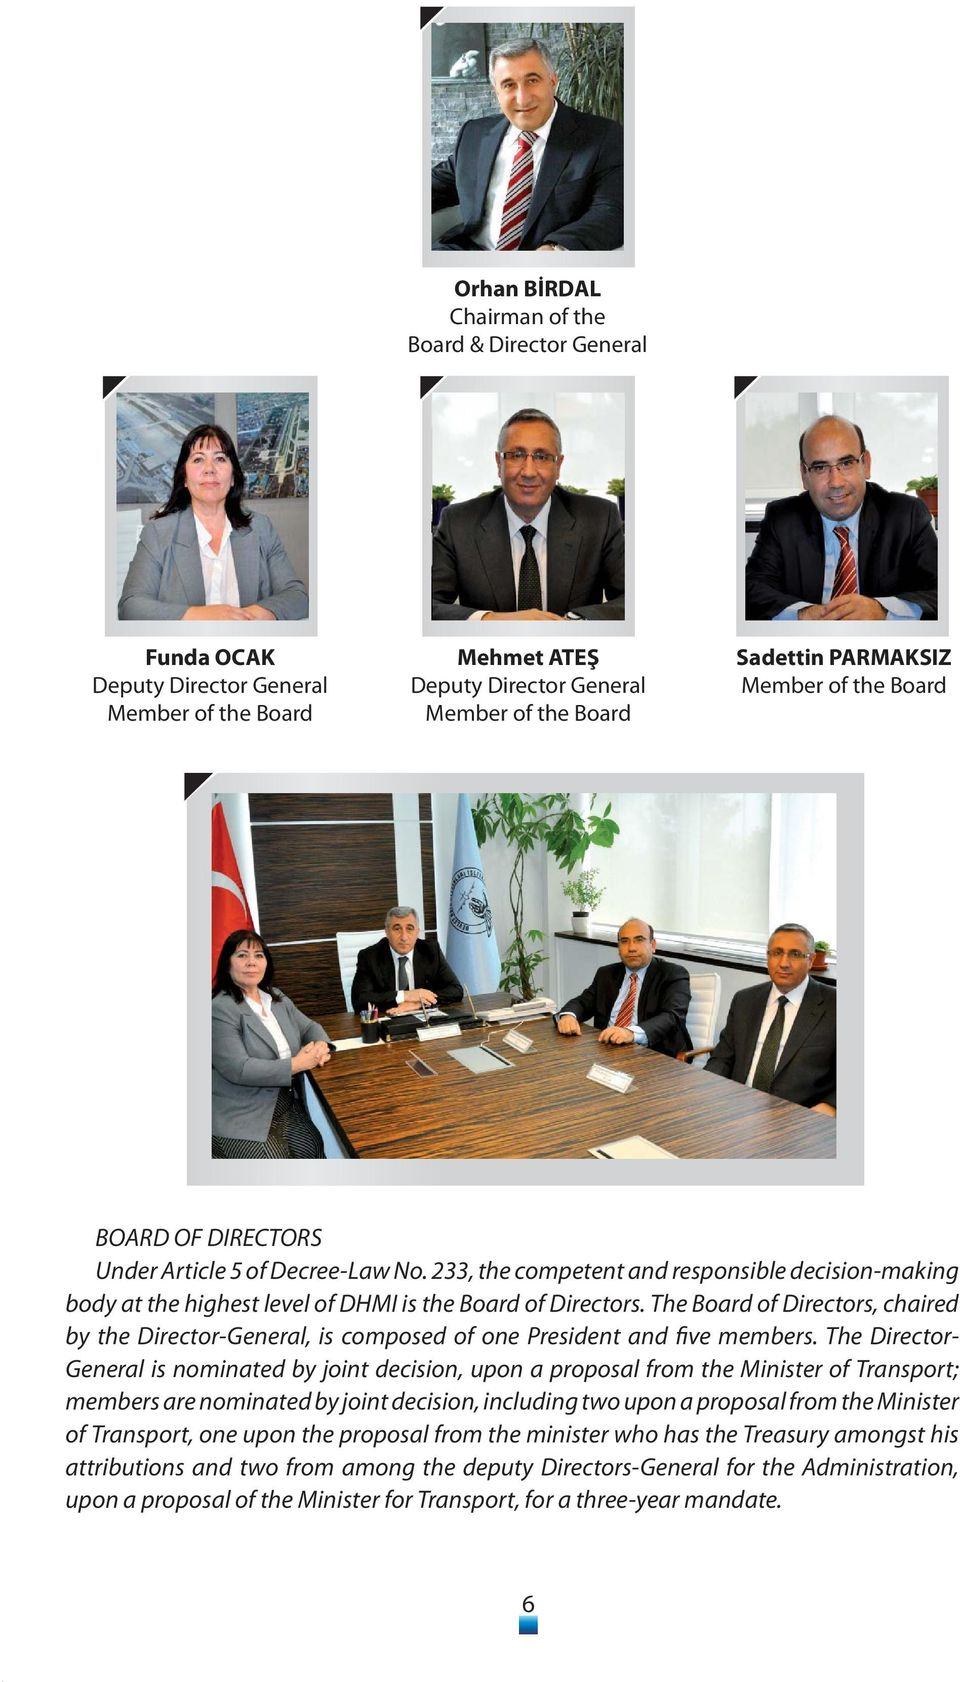 The Board of Directors, chaired by the Director-General, is composed of one President and five members.